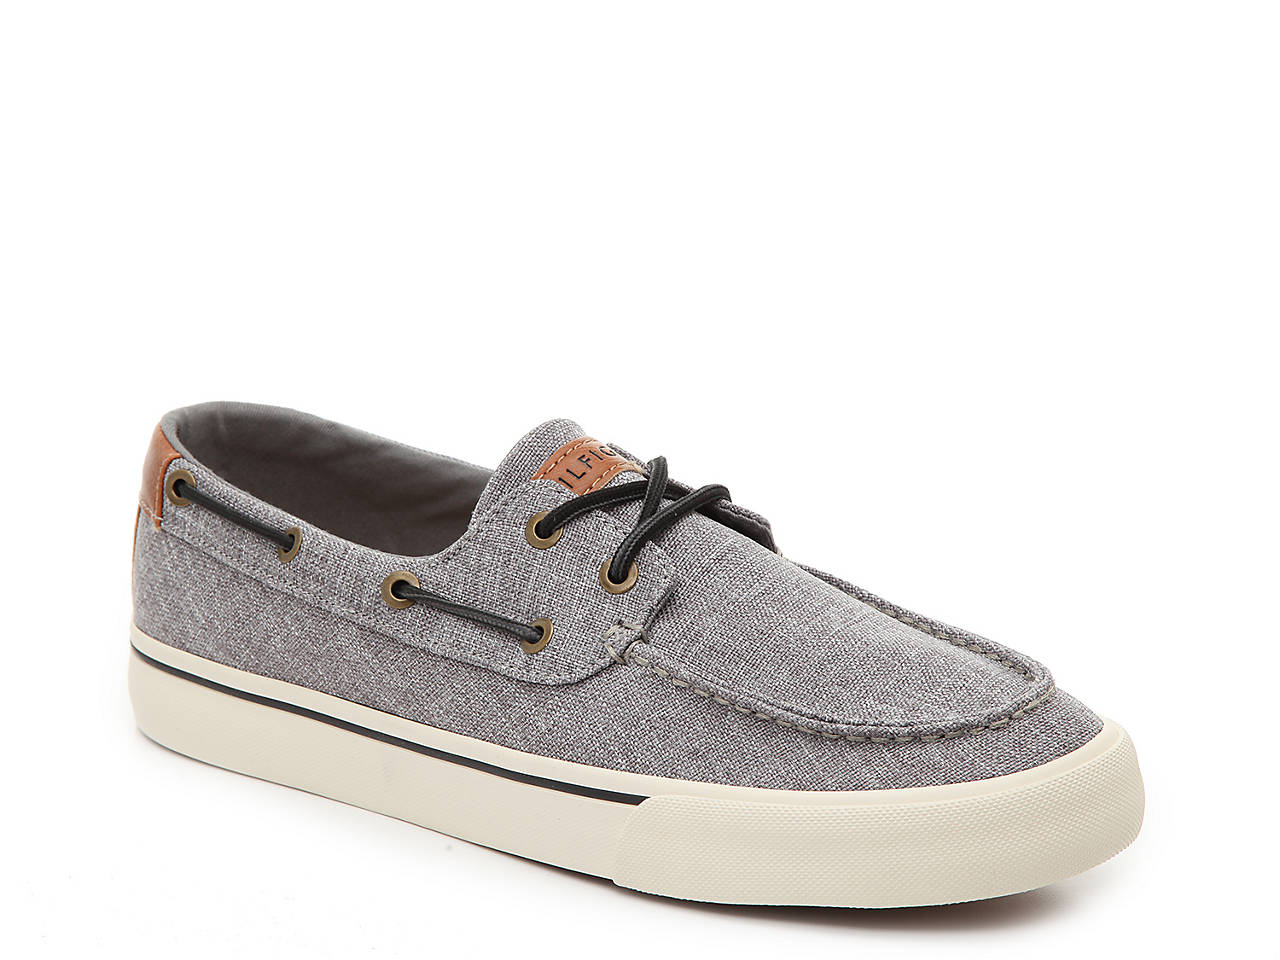 Tommy hilfiger pharis boat shoe mens shoes dsw pharis boat shoe publicscrutiny